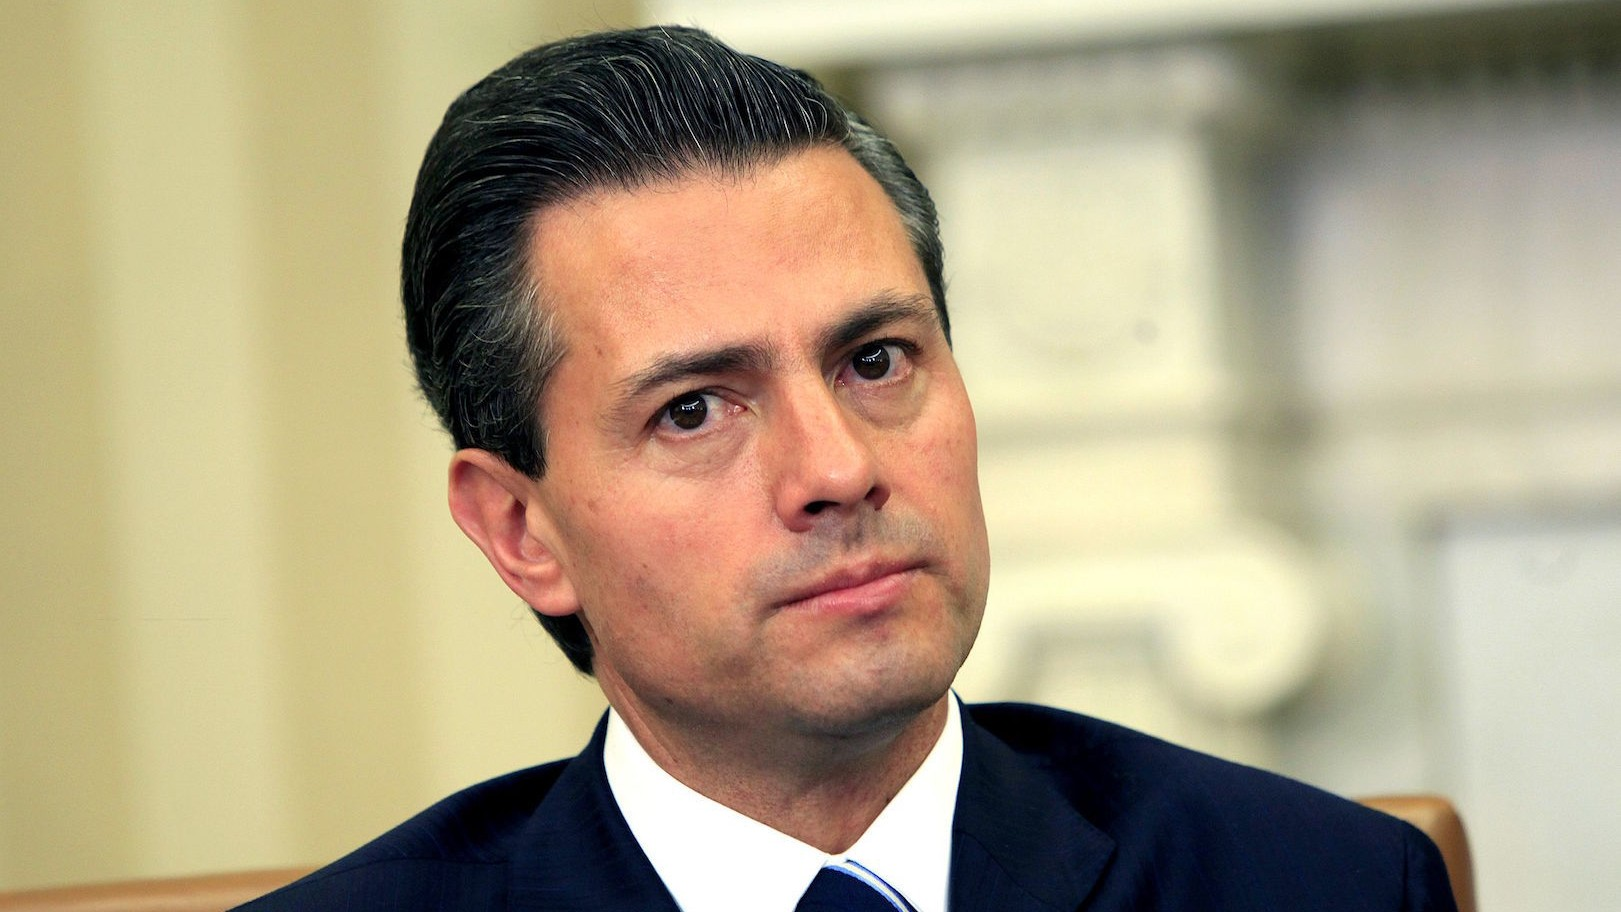 These Mexican states are way too corrupt, according to the scandal-plagued president